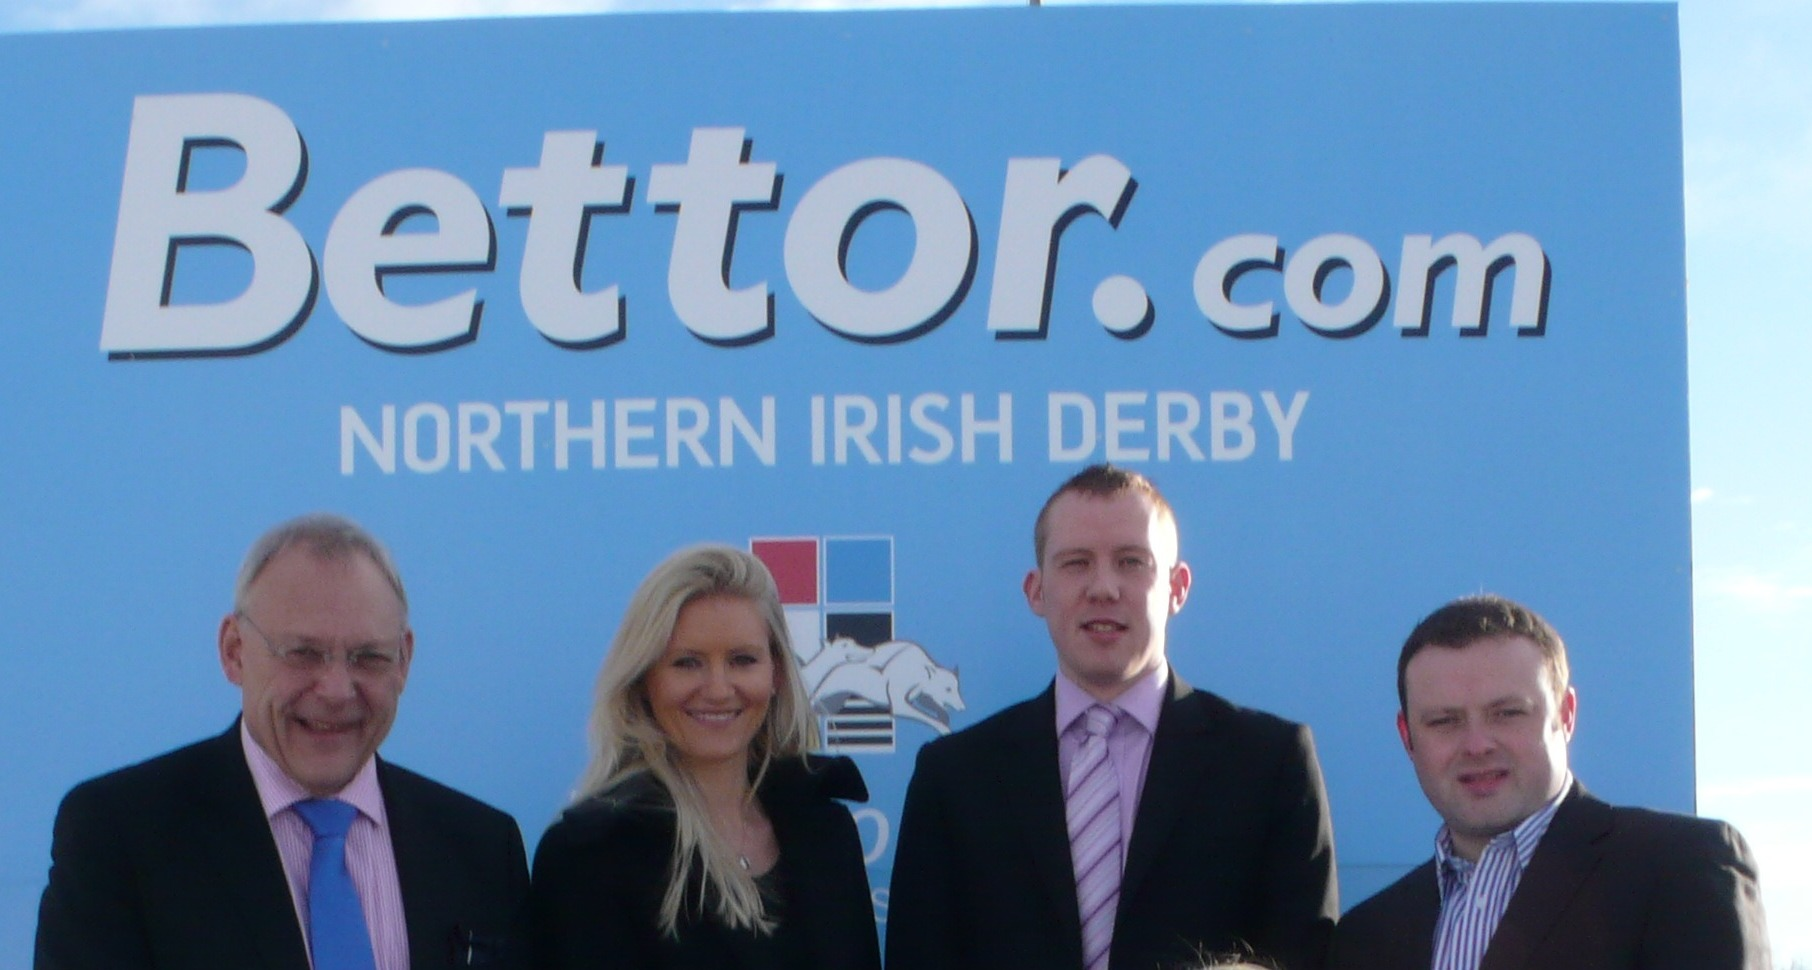 Northern Irish Derby begins at Drumbo Park